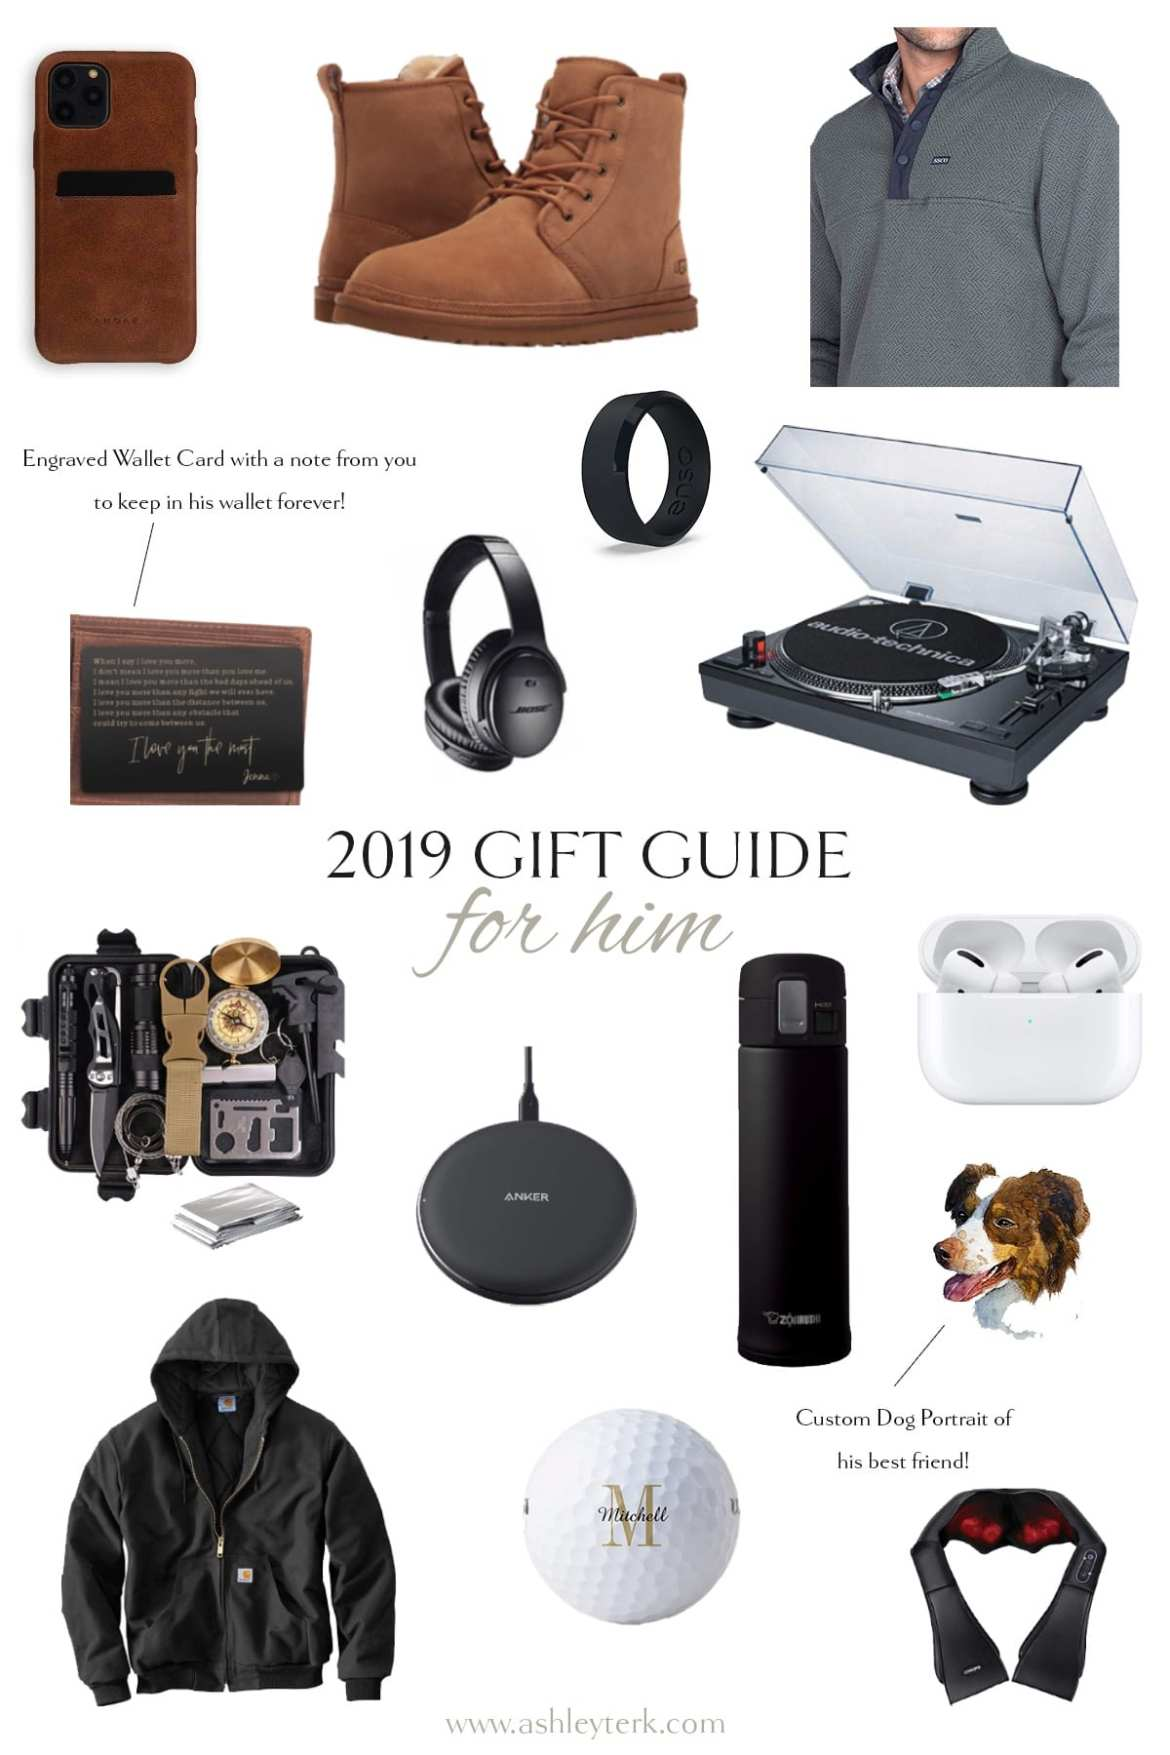 Gift Guide: 20 Unique Gifts for Him This Christmas by popular North Carolina life and style blogger, Ashley Terk: collage image of airpods, record player, silicone ring, personalized wallet, headphones, quarter zip up pullover, and personalized golf balls.